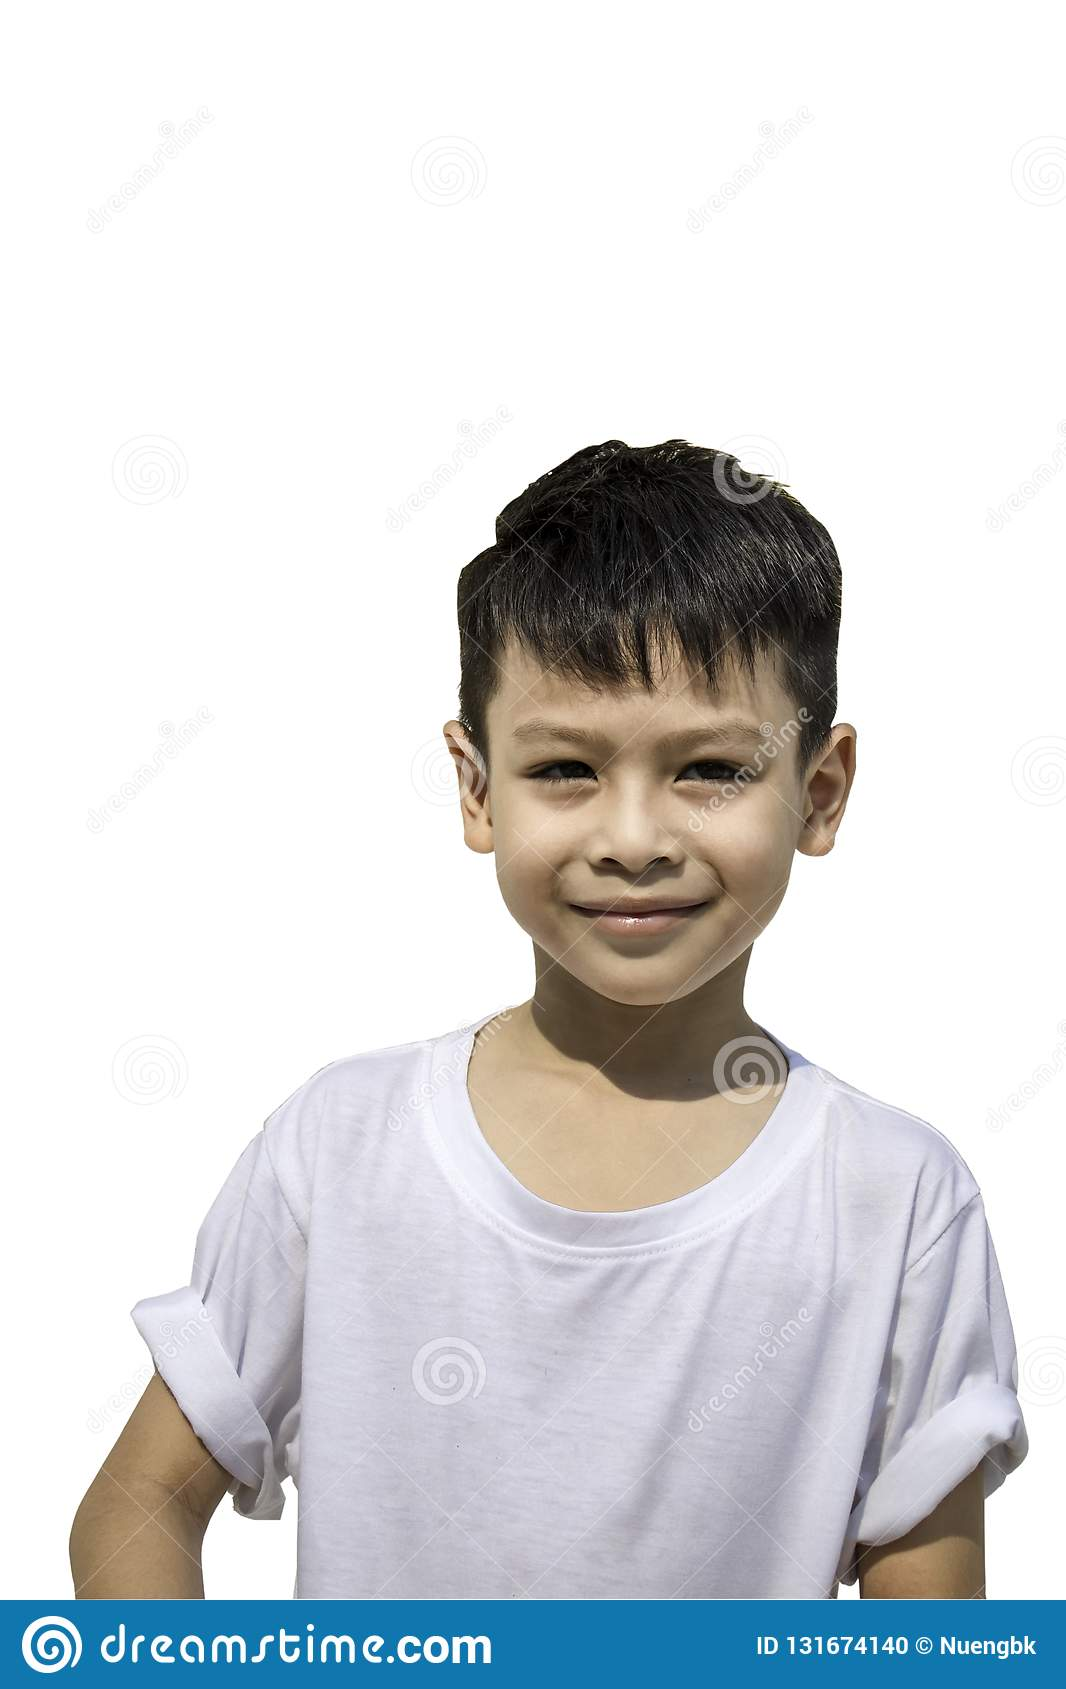 92c9c4e60 Portrait of Asian boy wearing a t-shirt on a white background , Thailand.